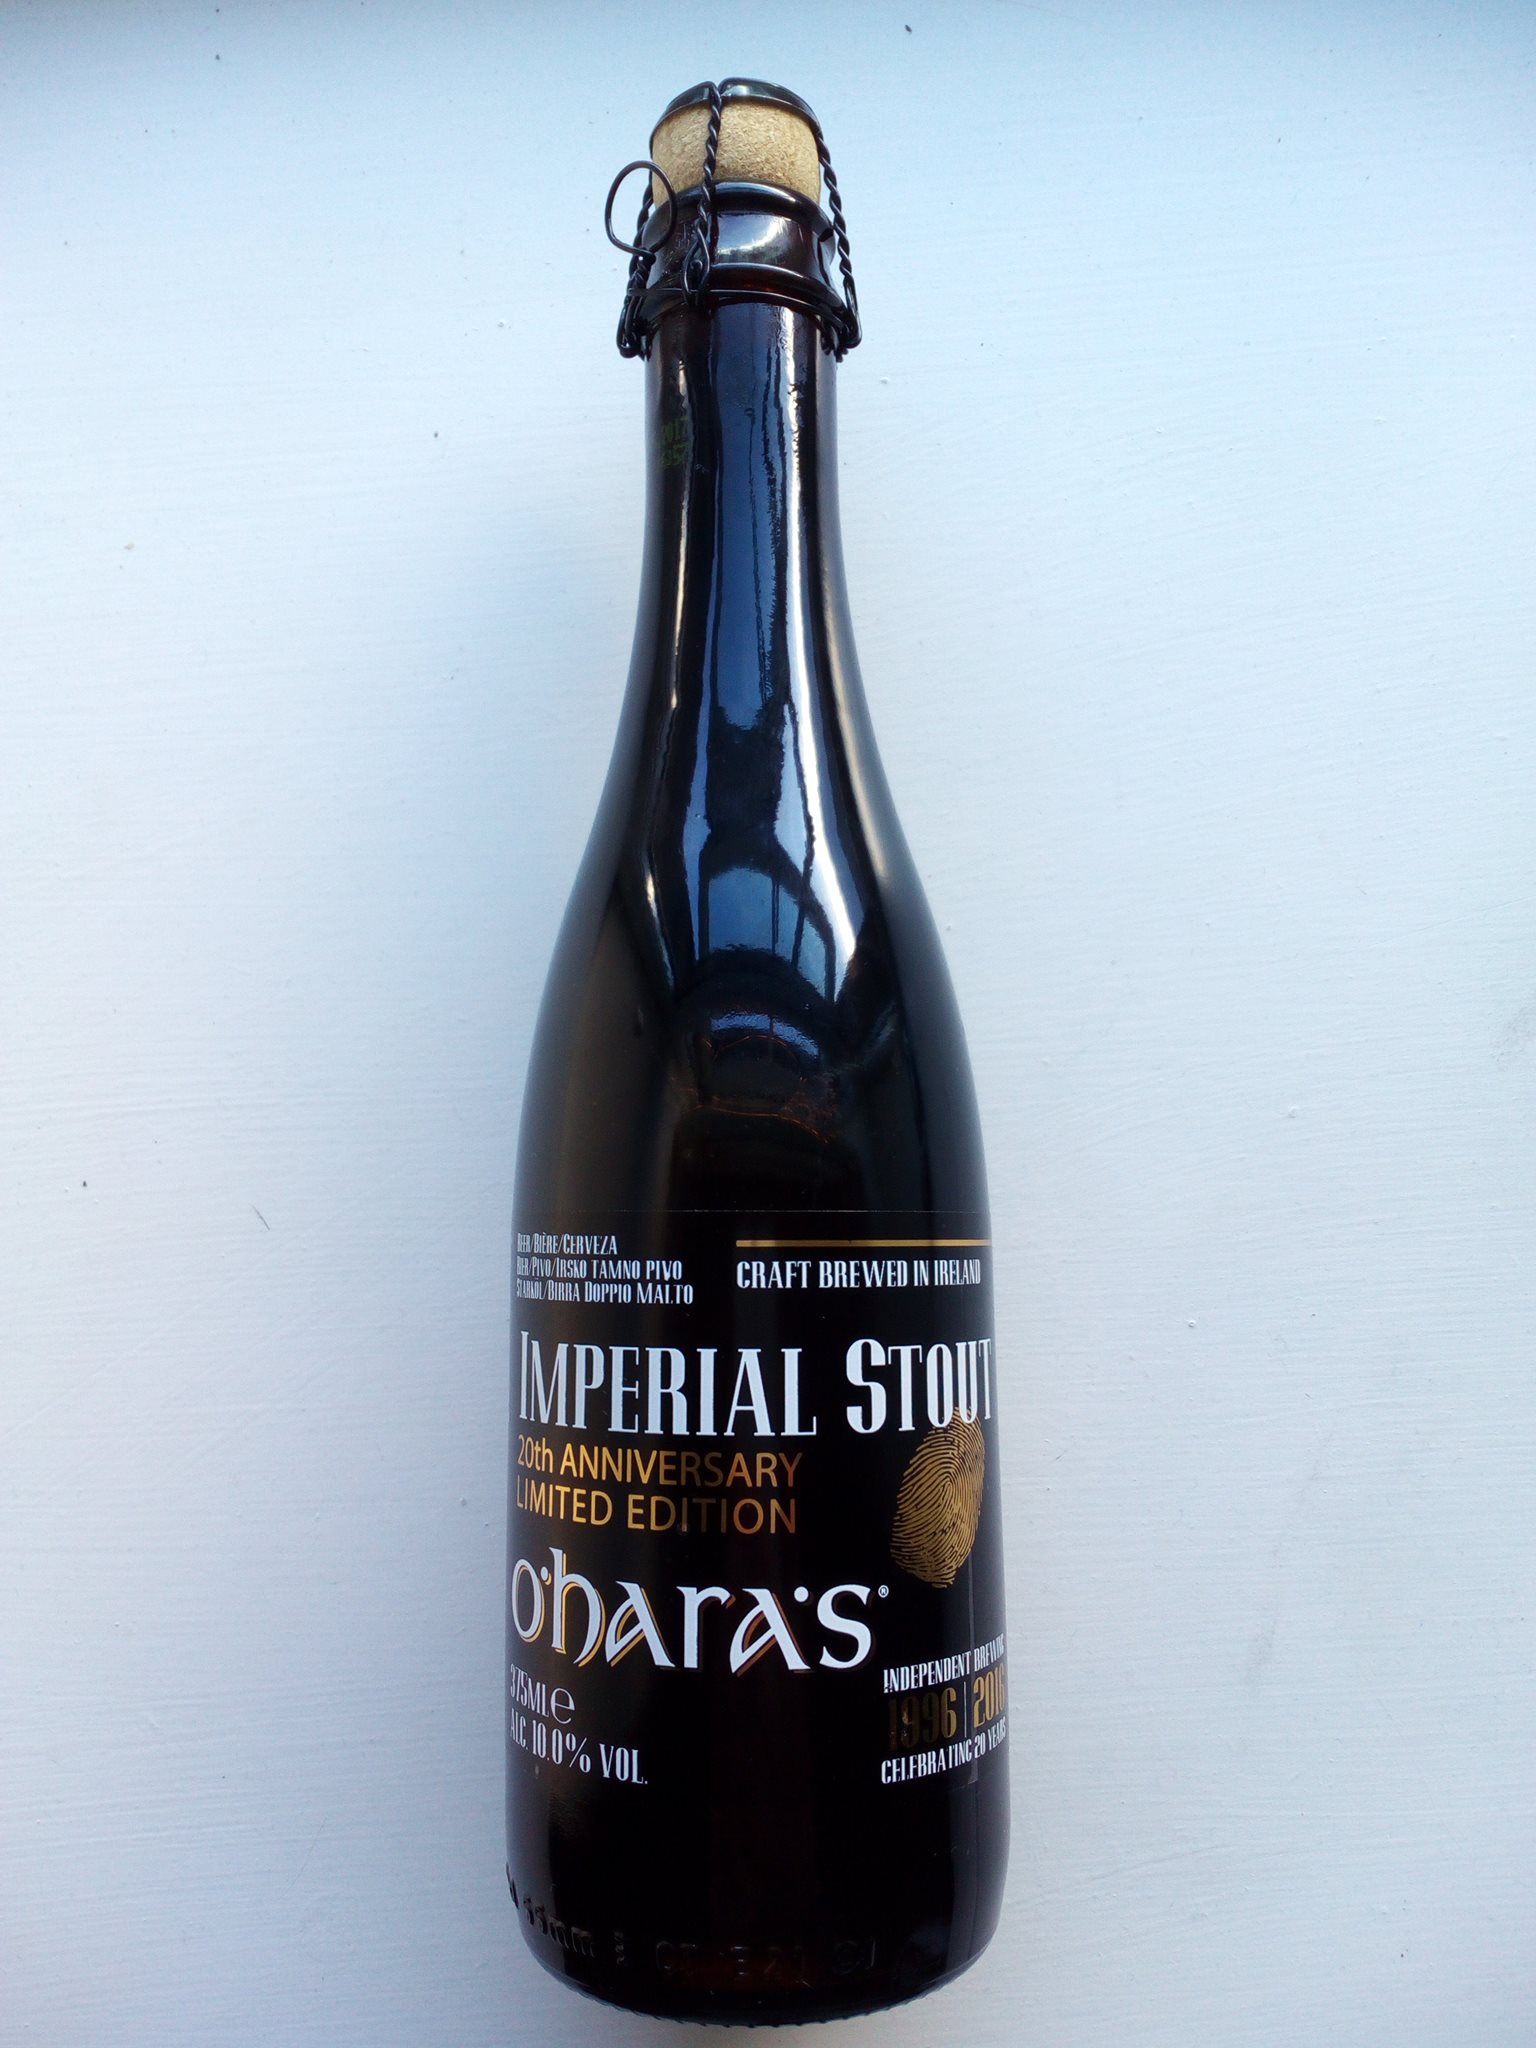 O'HARA'S IMPERIAL STOUT